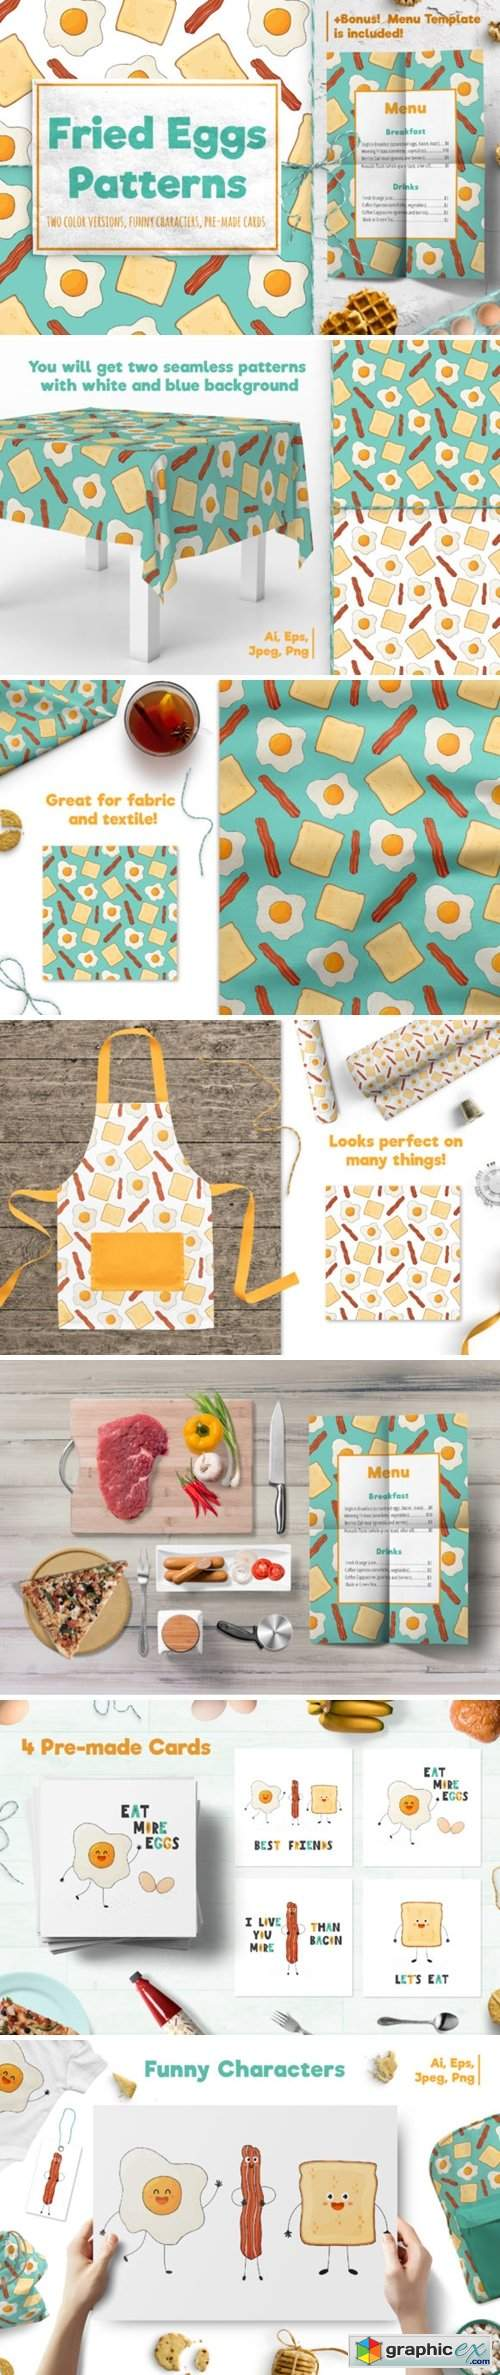 Fried Eggs Patterns and Prints